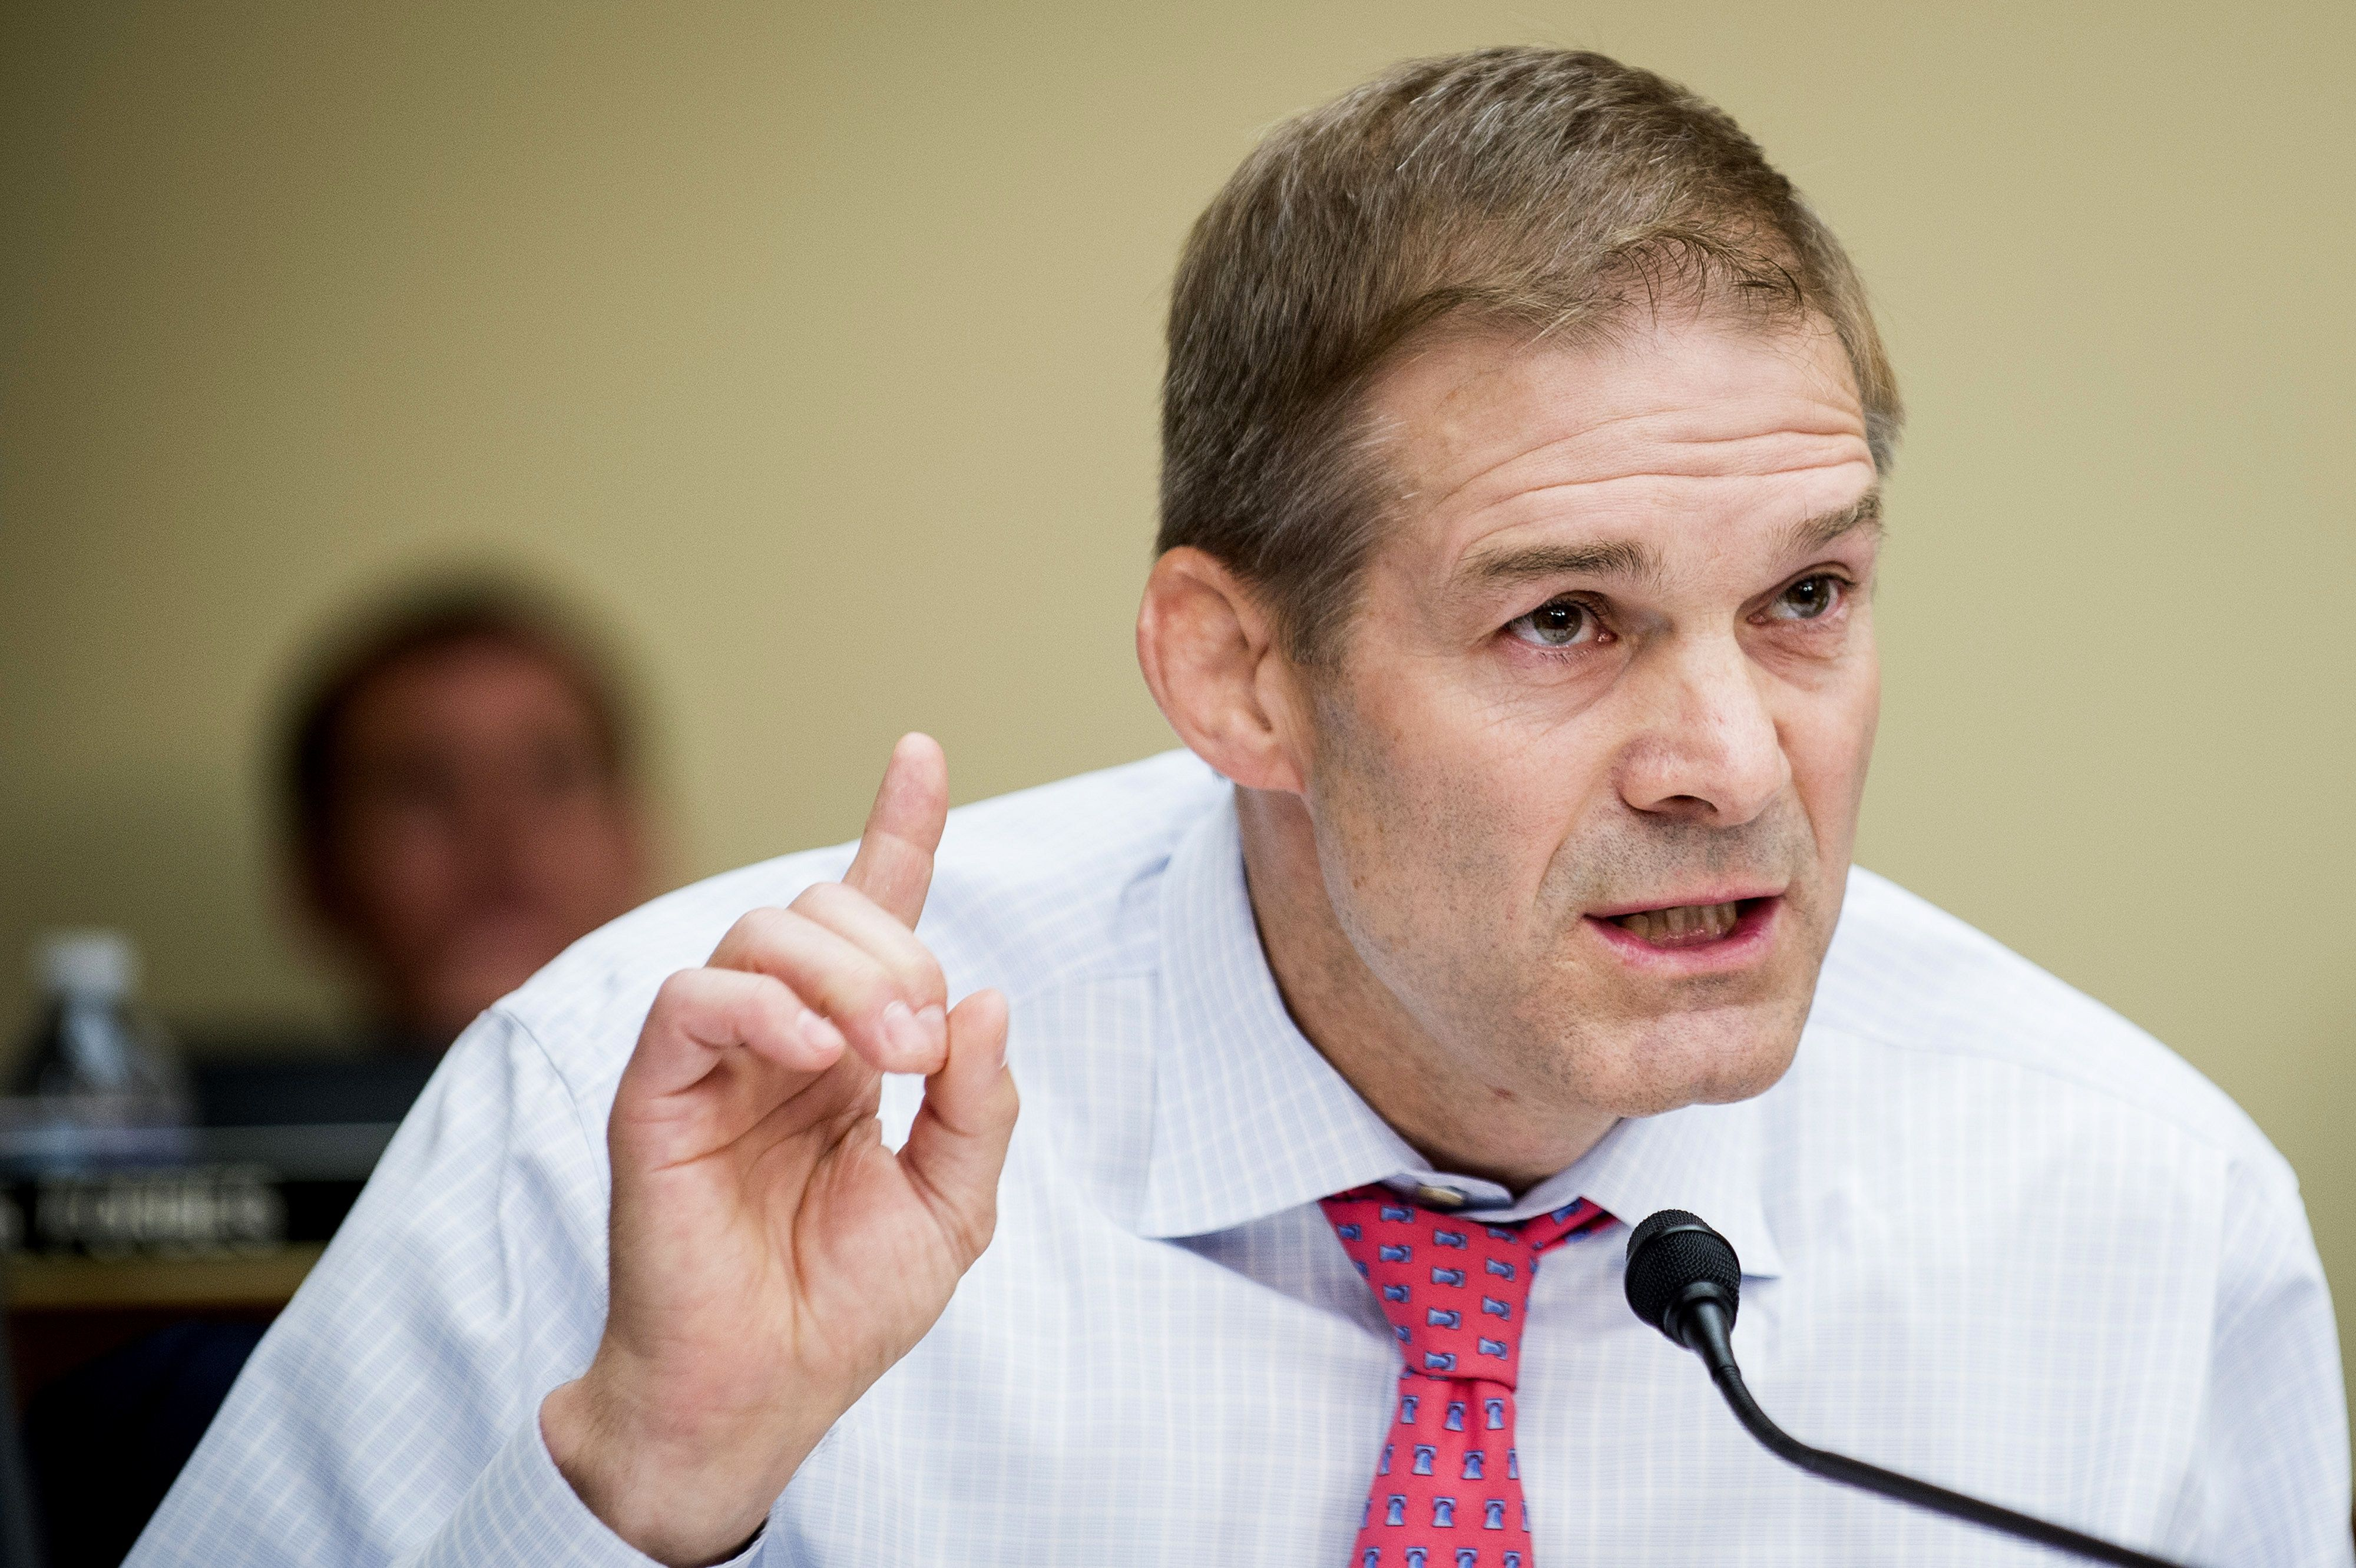 Representative Jim Jordan, a Republican from Ohio, questions Loretta Lynch, U.S. attorney general, not pictured, during a House Judiciary Committee in Washington. D.C., U.S., on Tuesday, July 12, 2016. Lynch rejected Republican demands to discuss her decision against prosecuting Hillary Clinton before a House panel whose chairman said the former secretary of state's careless handling of official communications may have jeopardized U.S. national security. Photographer: Pete Marovich/Bloomberg via Getty Images